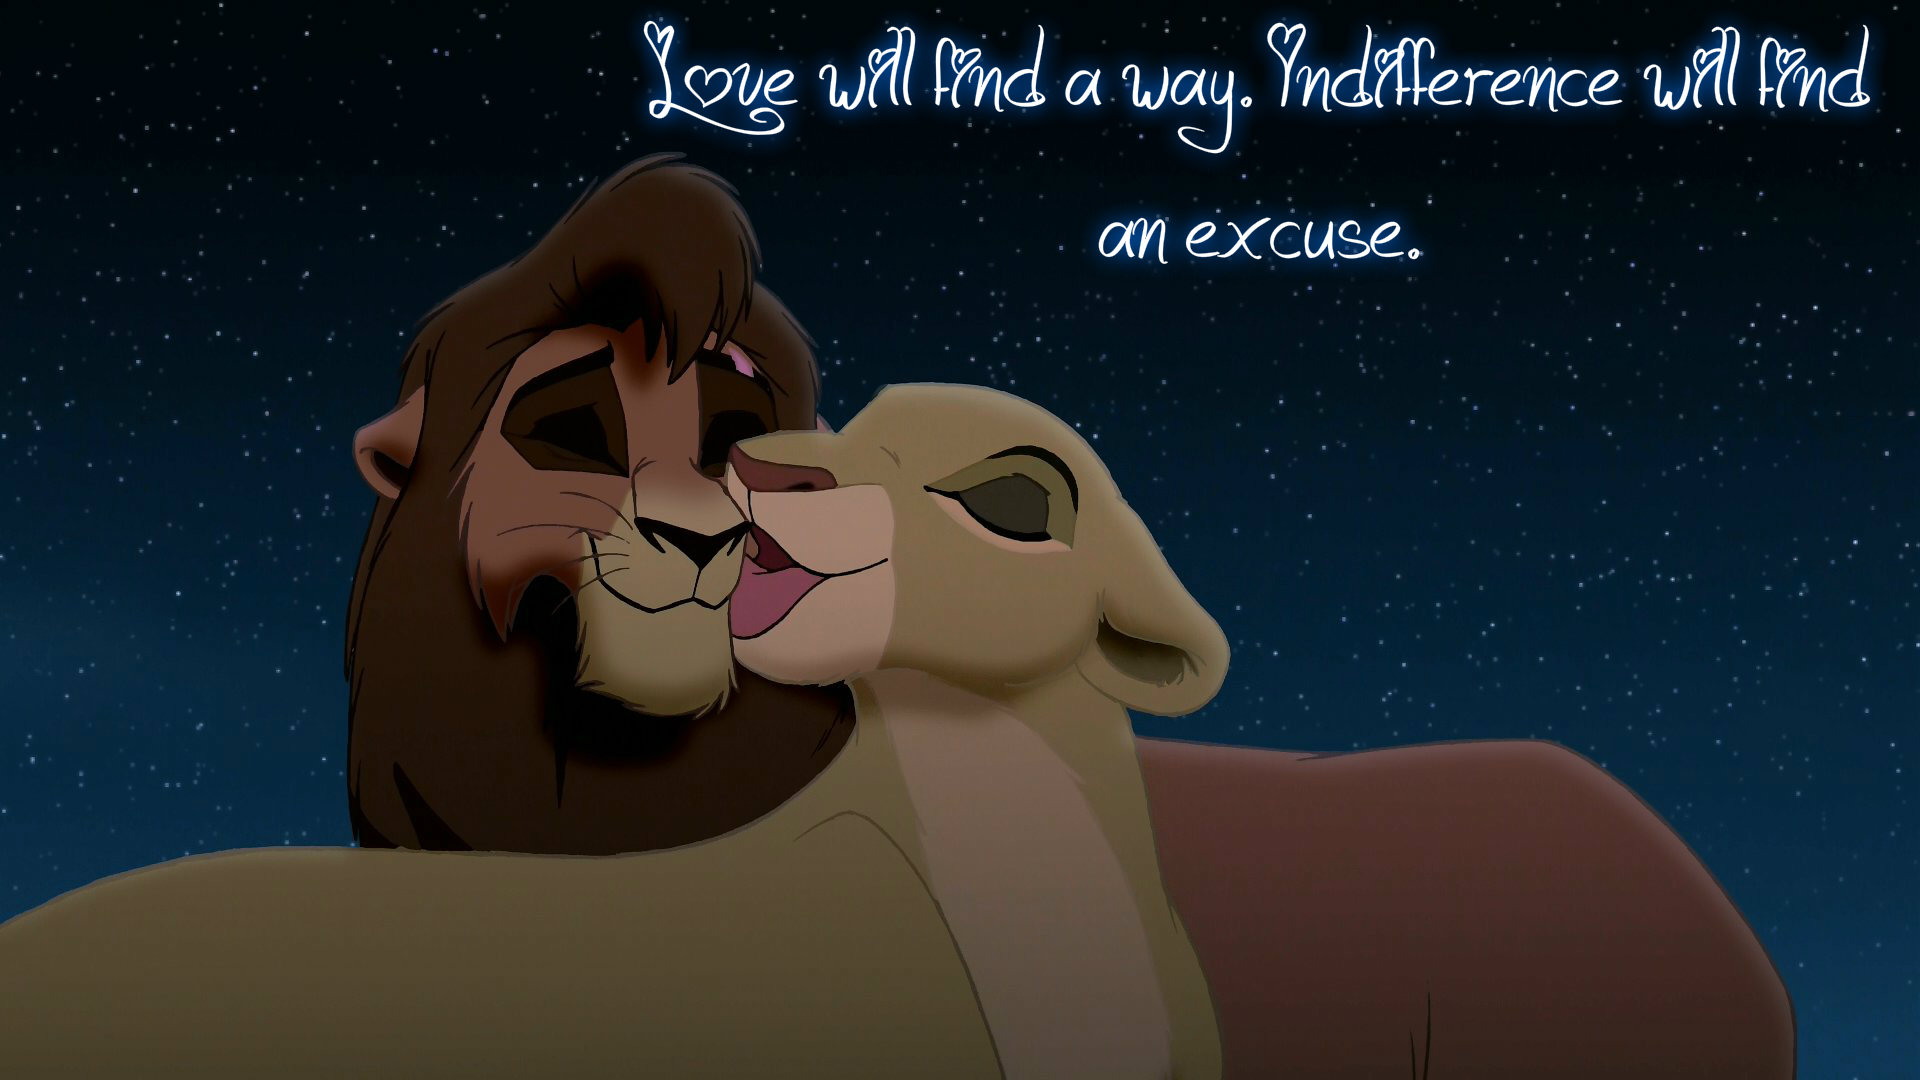 Love Will Find A Way Indifference Will Find An Excuse The Lion King 2 Simba S Pride Fan Art 34528575 Fanpop Page 9